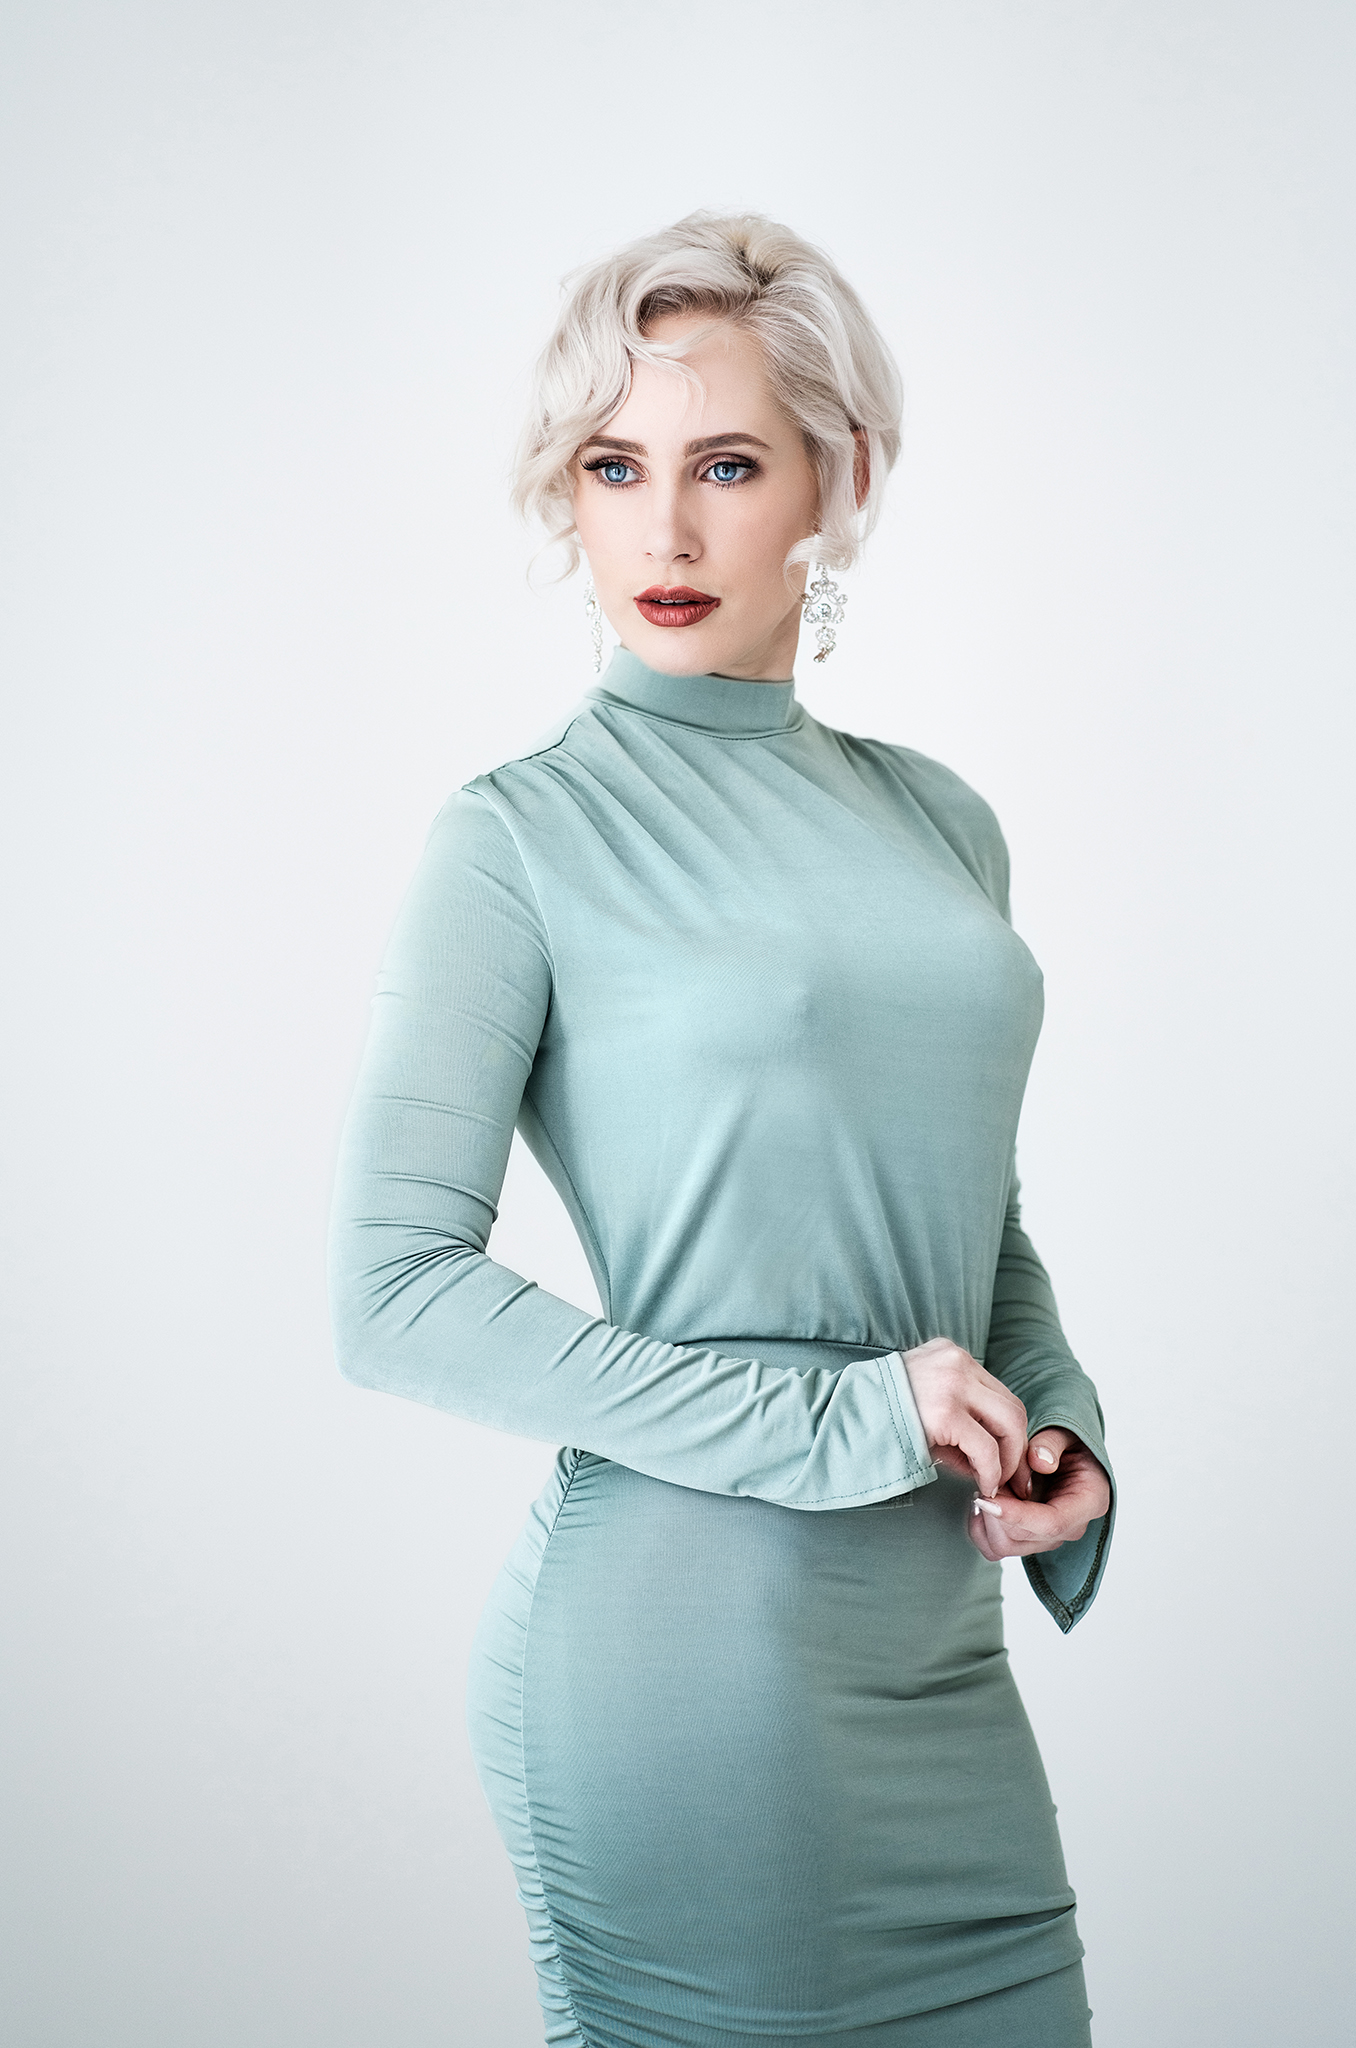 blonde model in green dress by Portrait photographer Preston